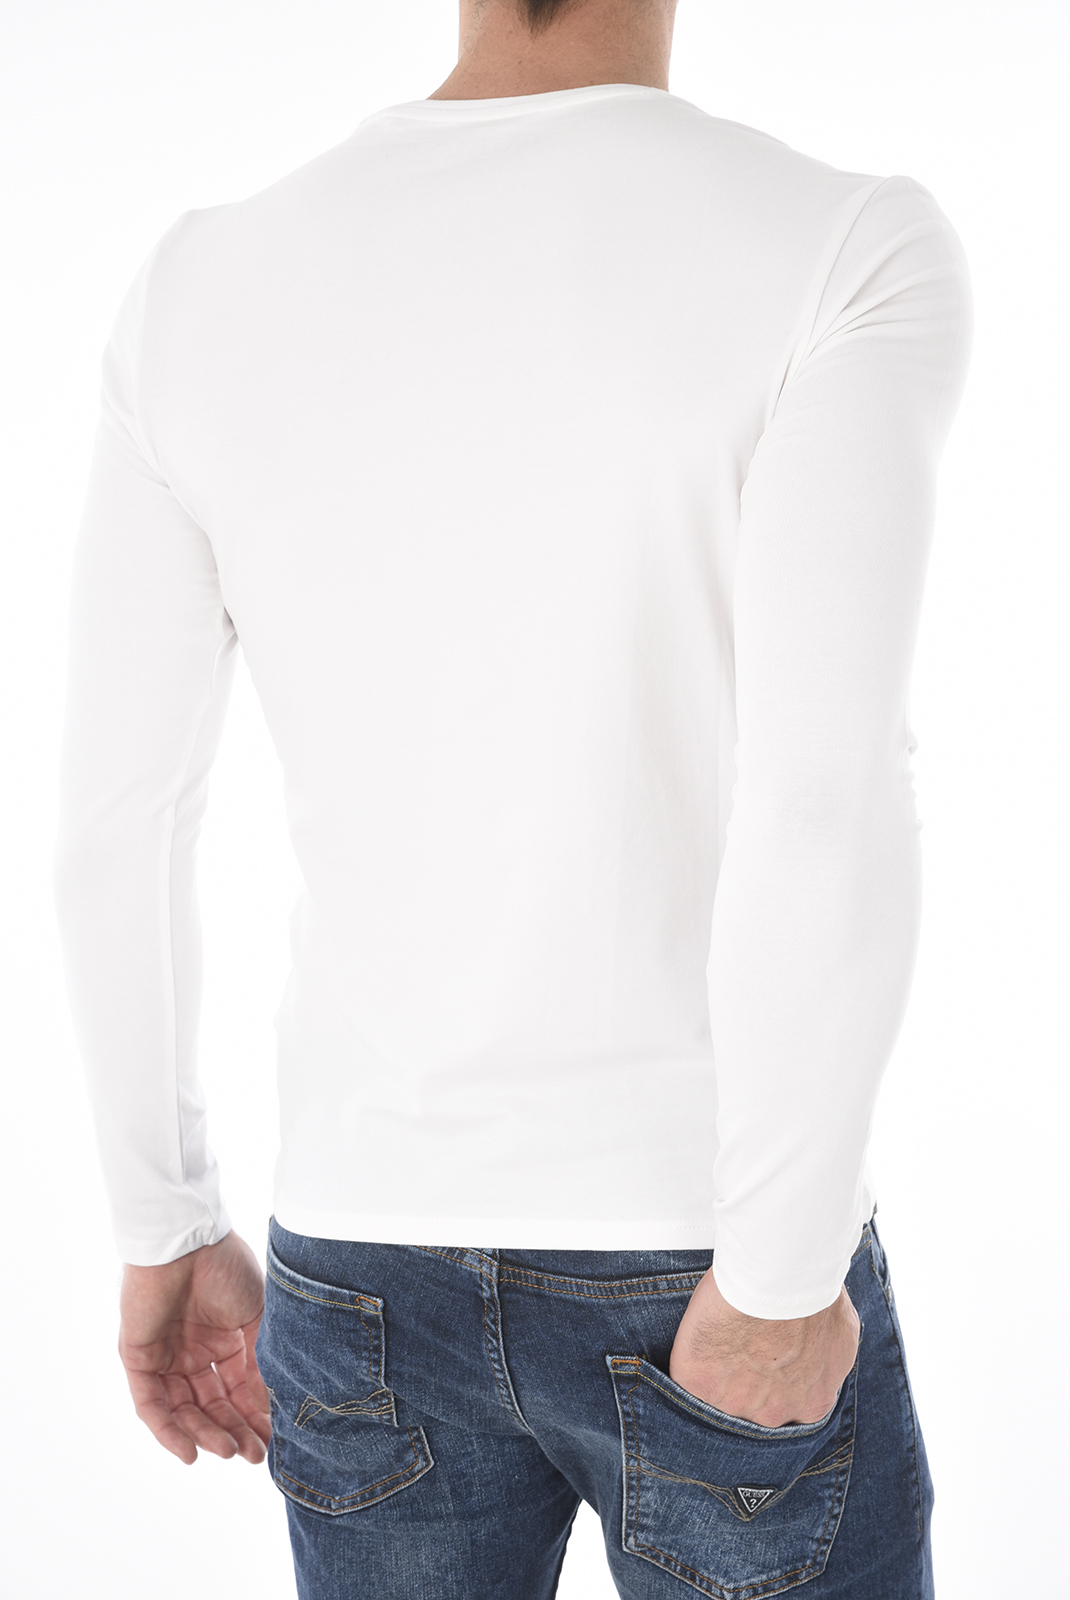 T-S manches longues  Guess jeans M73I57 J1300 A000 WHITE